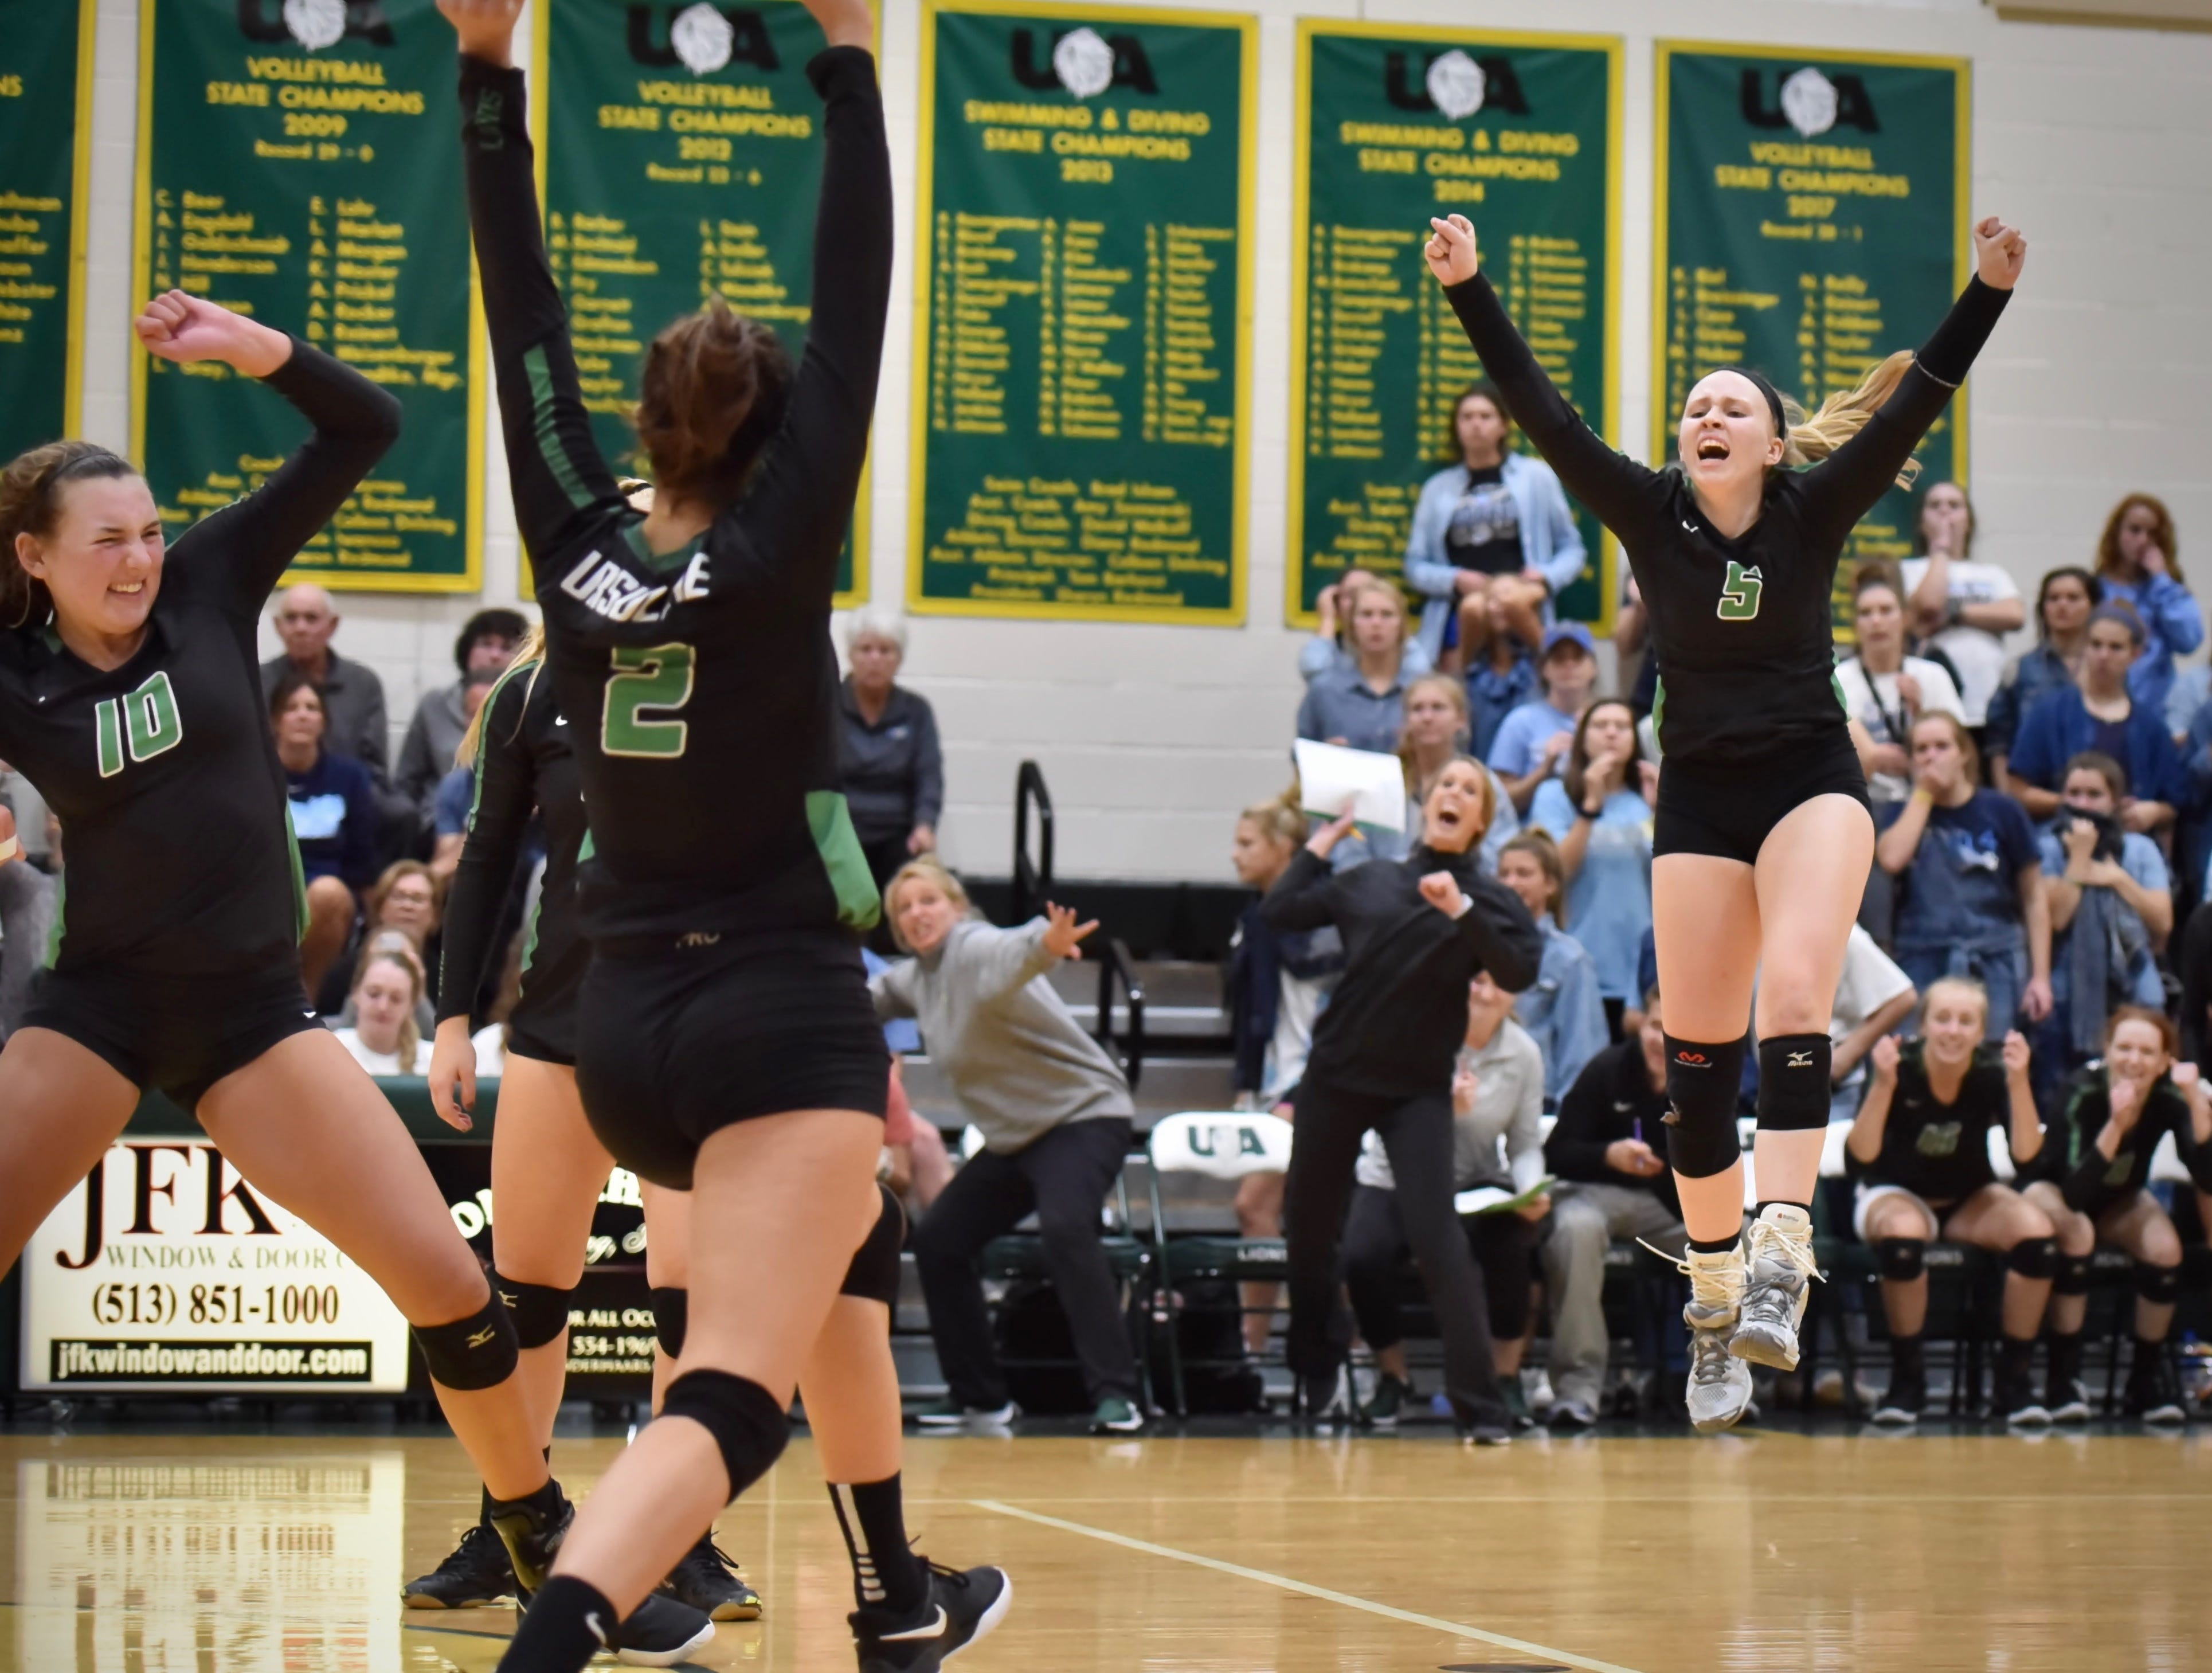 The Ursuline Lions celebrate after winning the match against Mount Notre Dame Tuesday, Sept. 11, 2018 at Ursuline Academy